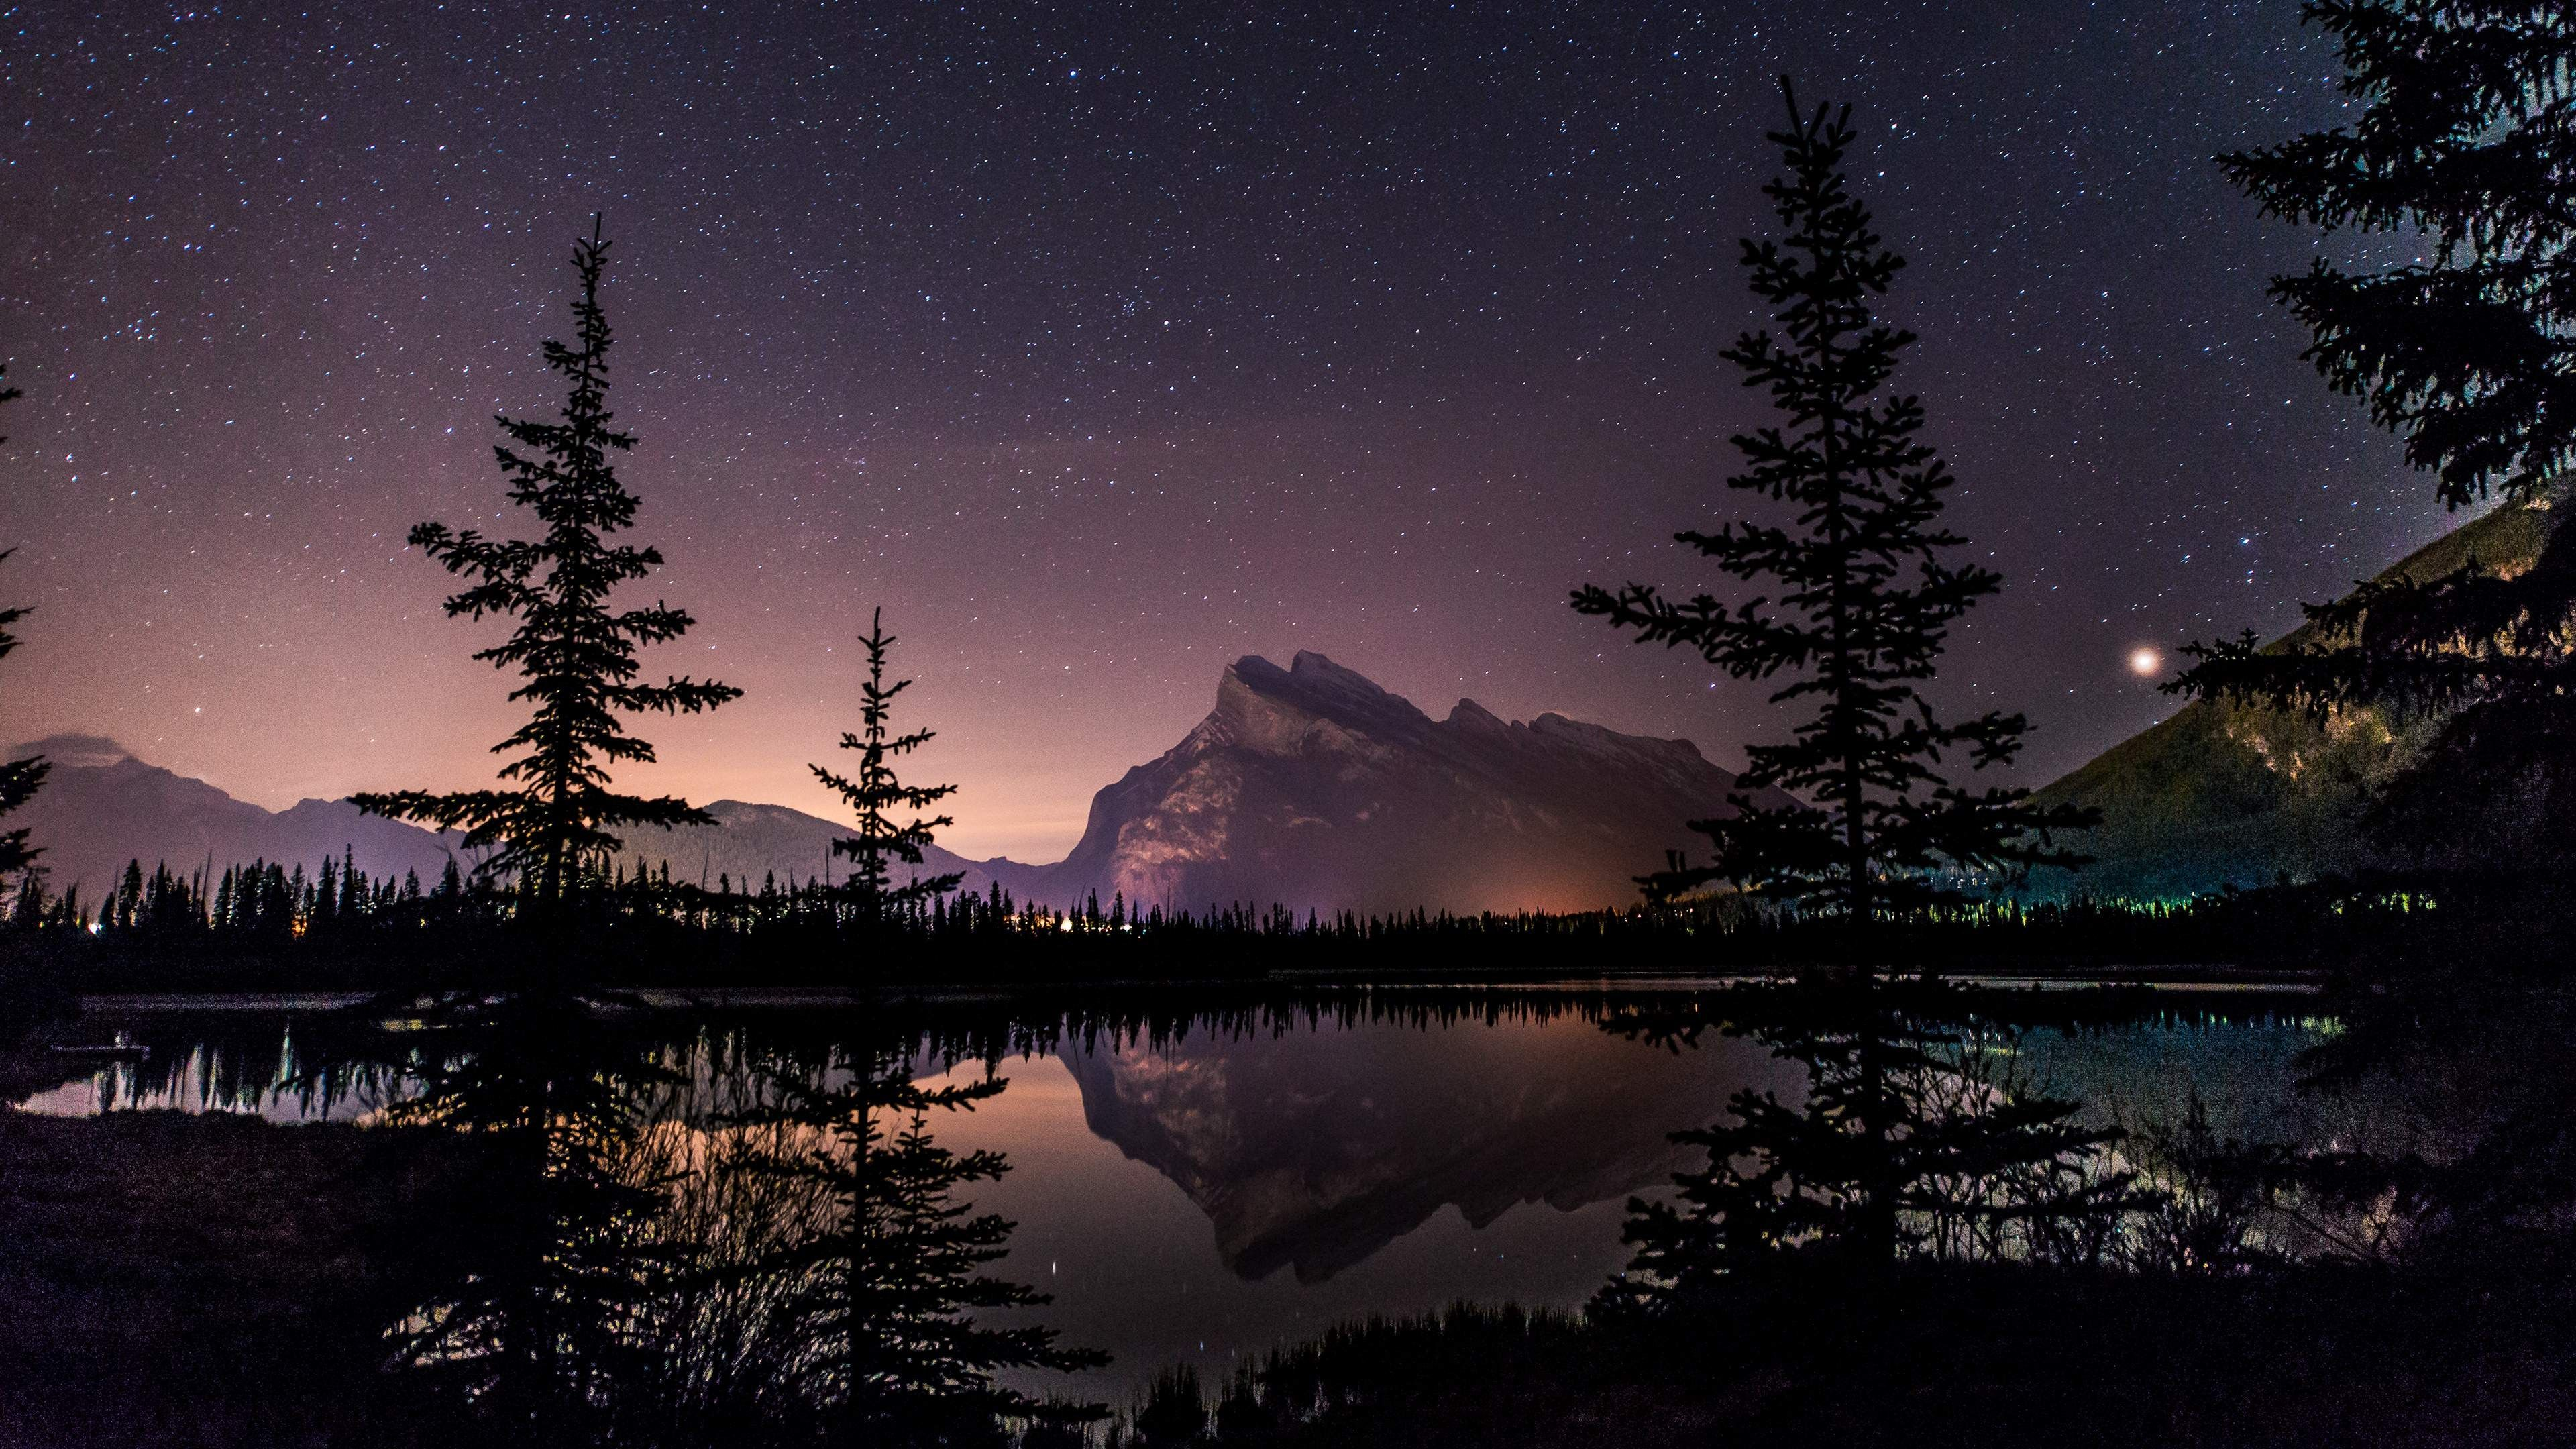 sky lake starry night 4k ultra hd wallpaper ololoshenka